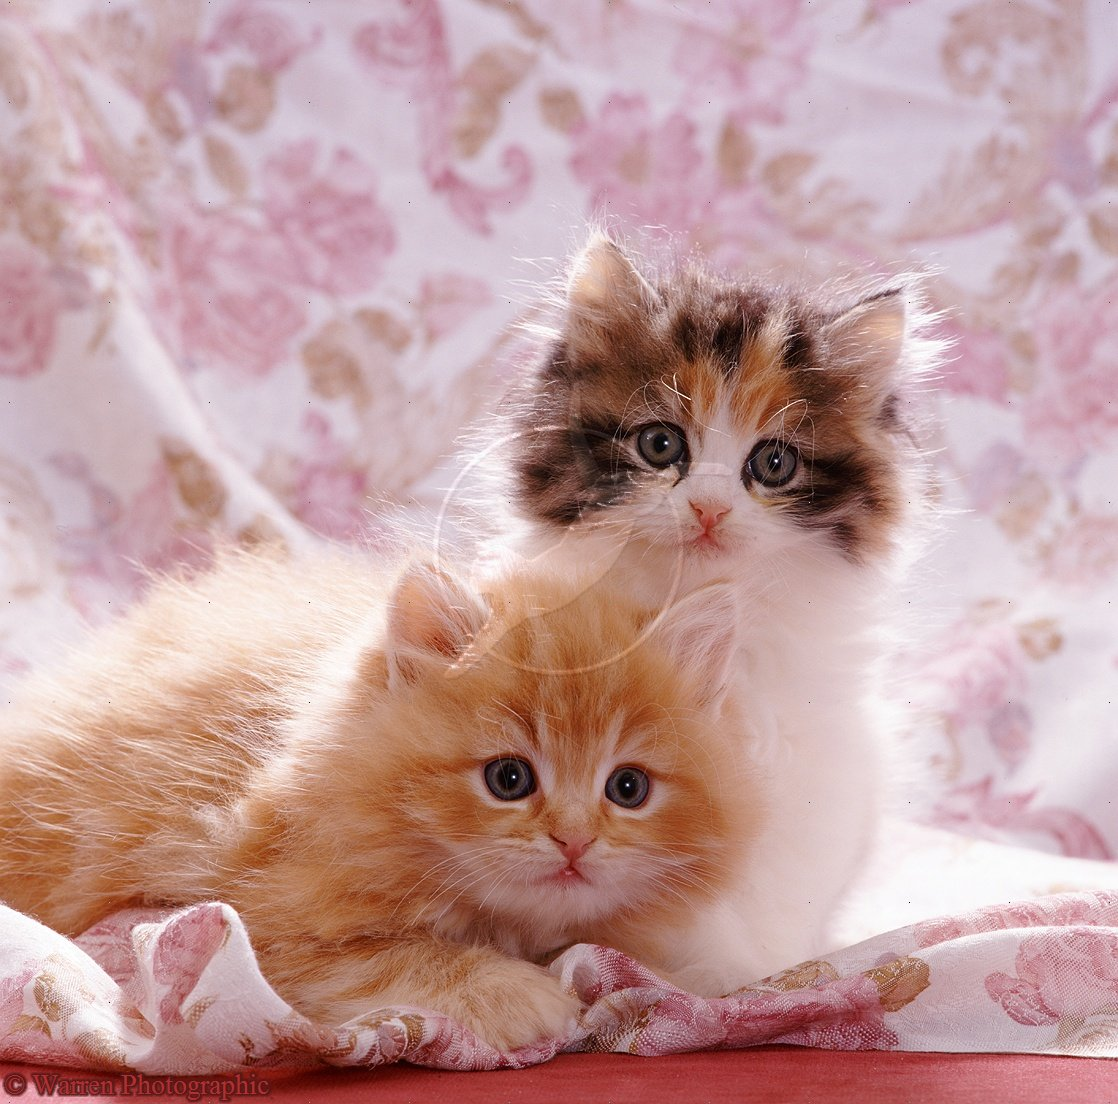 Pets: Cute Cats And Kittens Pictures And Wallpapers